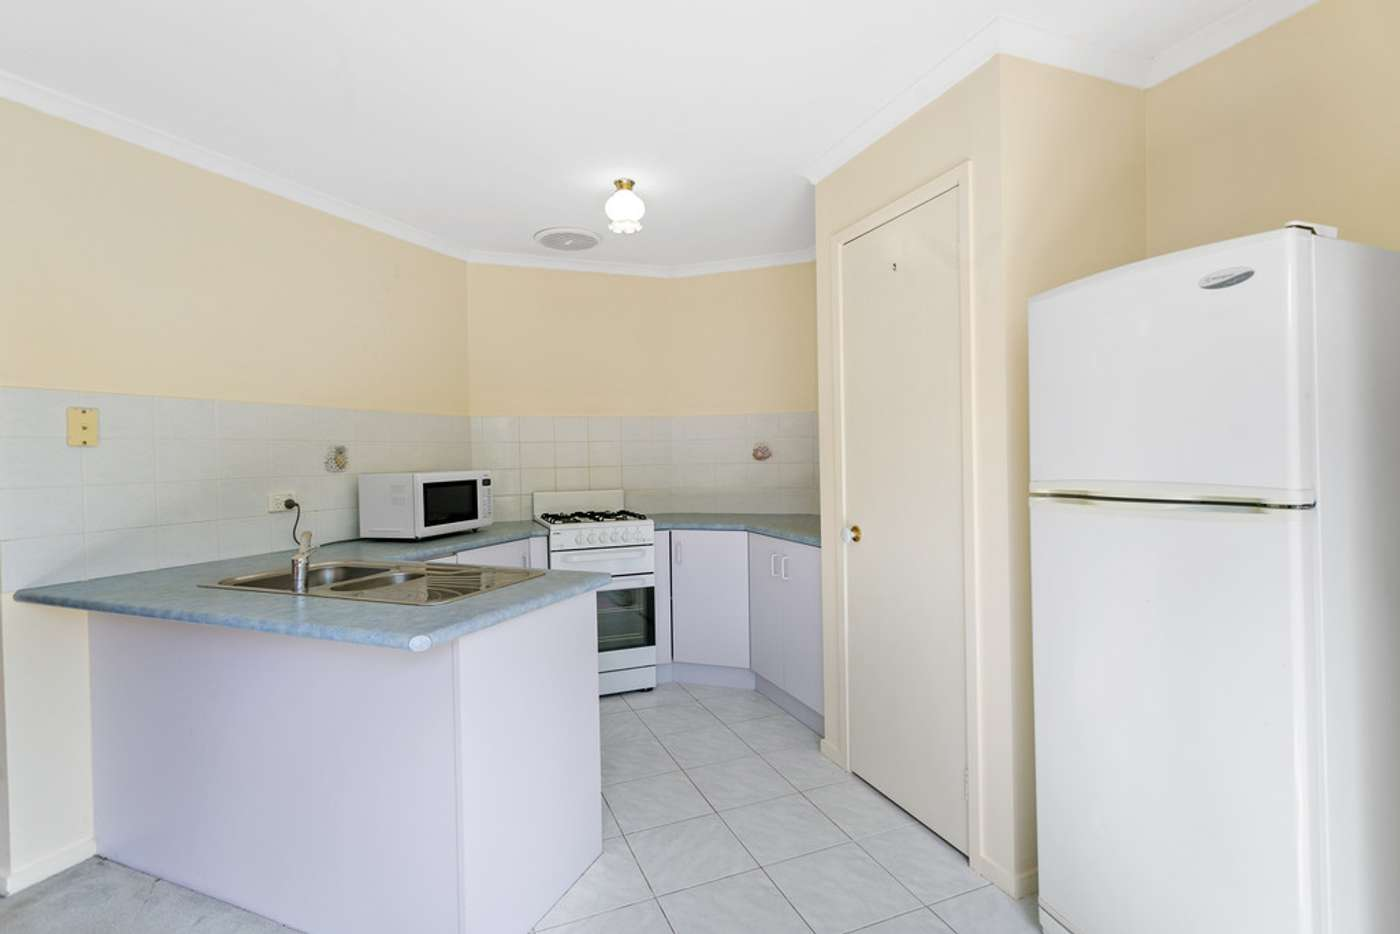 Fifth view of Homely unit listing, 5/91 Southgateway, Langwarrin VIC 3910